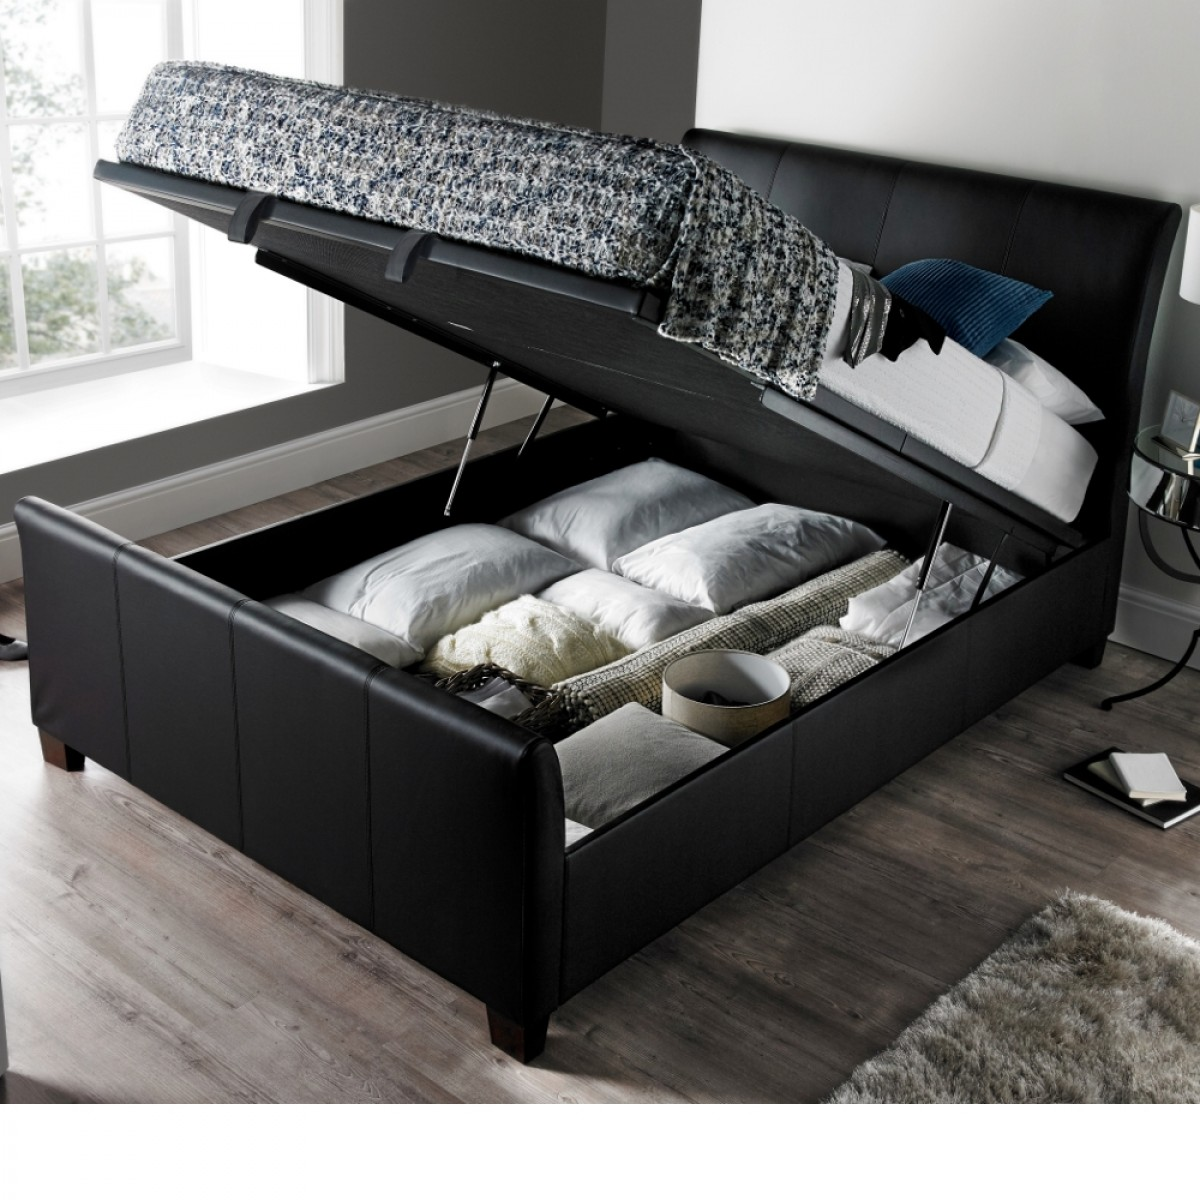 Superb Allendale Black Faux Leather Ottoman Storage Bed Squirreltailoven Fun Painted Chair Ideas Images Squirreltailovenorg